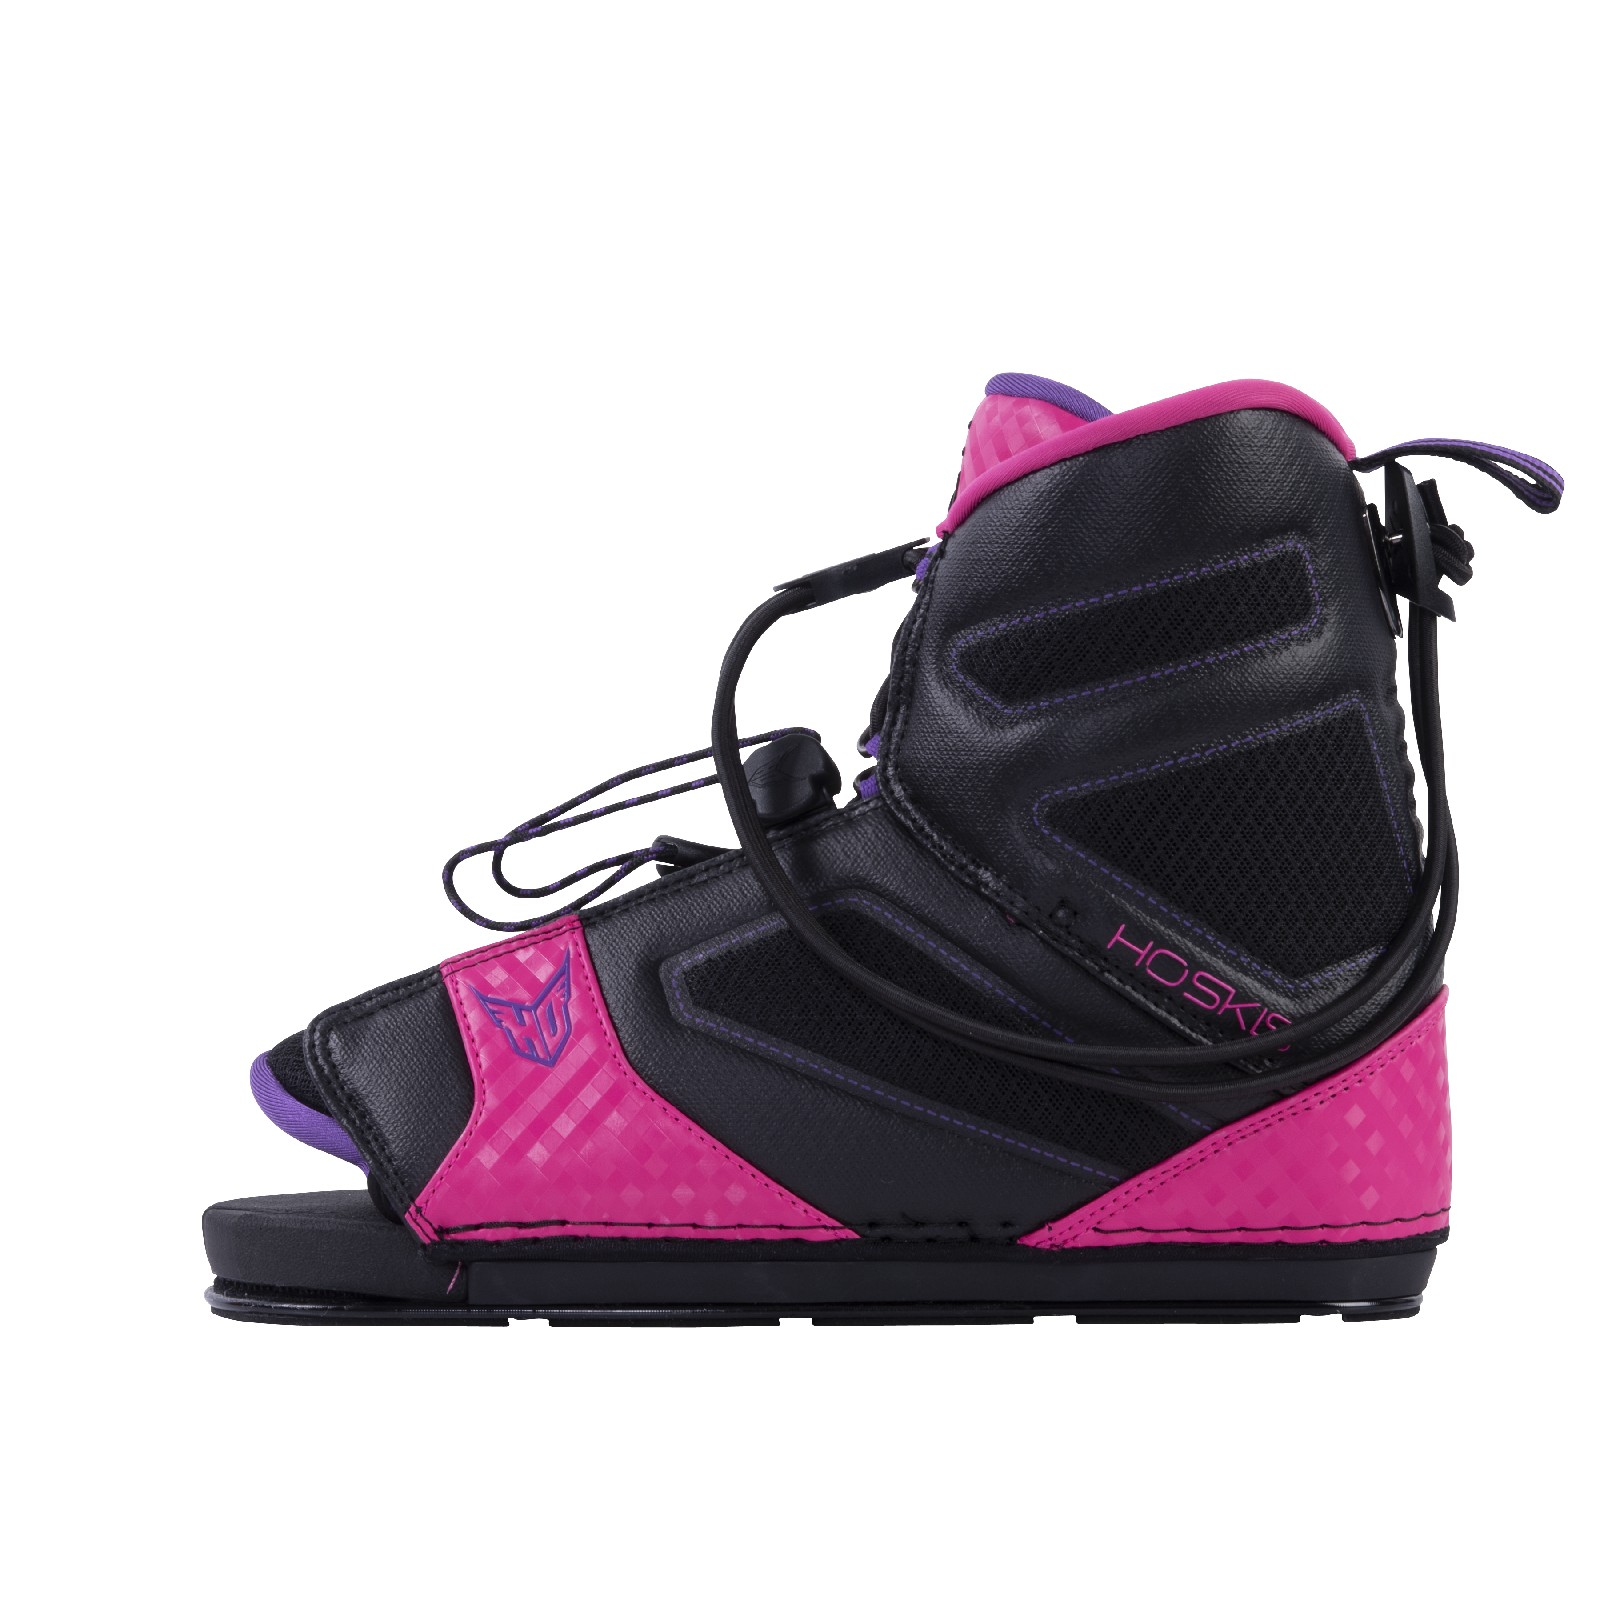 FREEMAX WOMEN'S BOOT DIRECT CONNECT HO SPORTS 2018